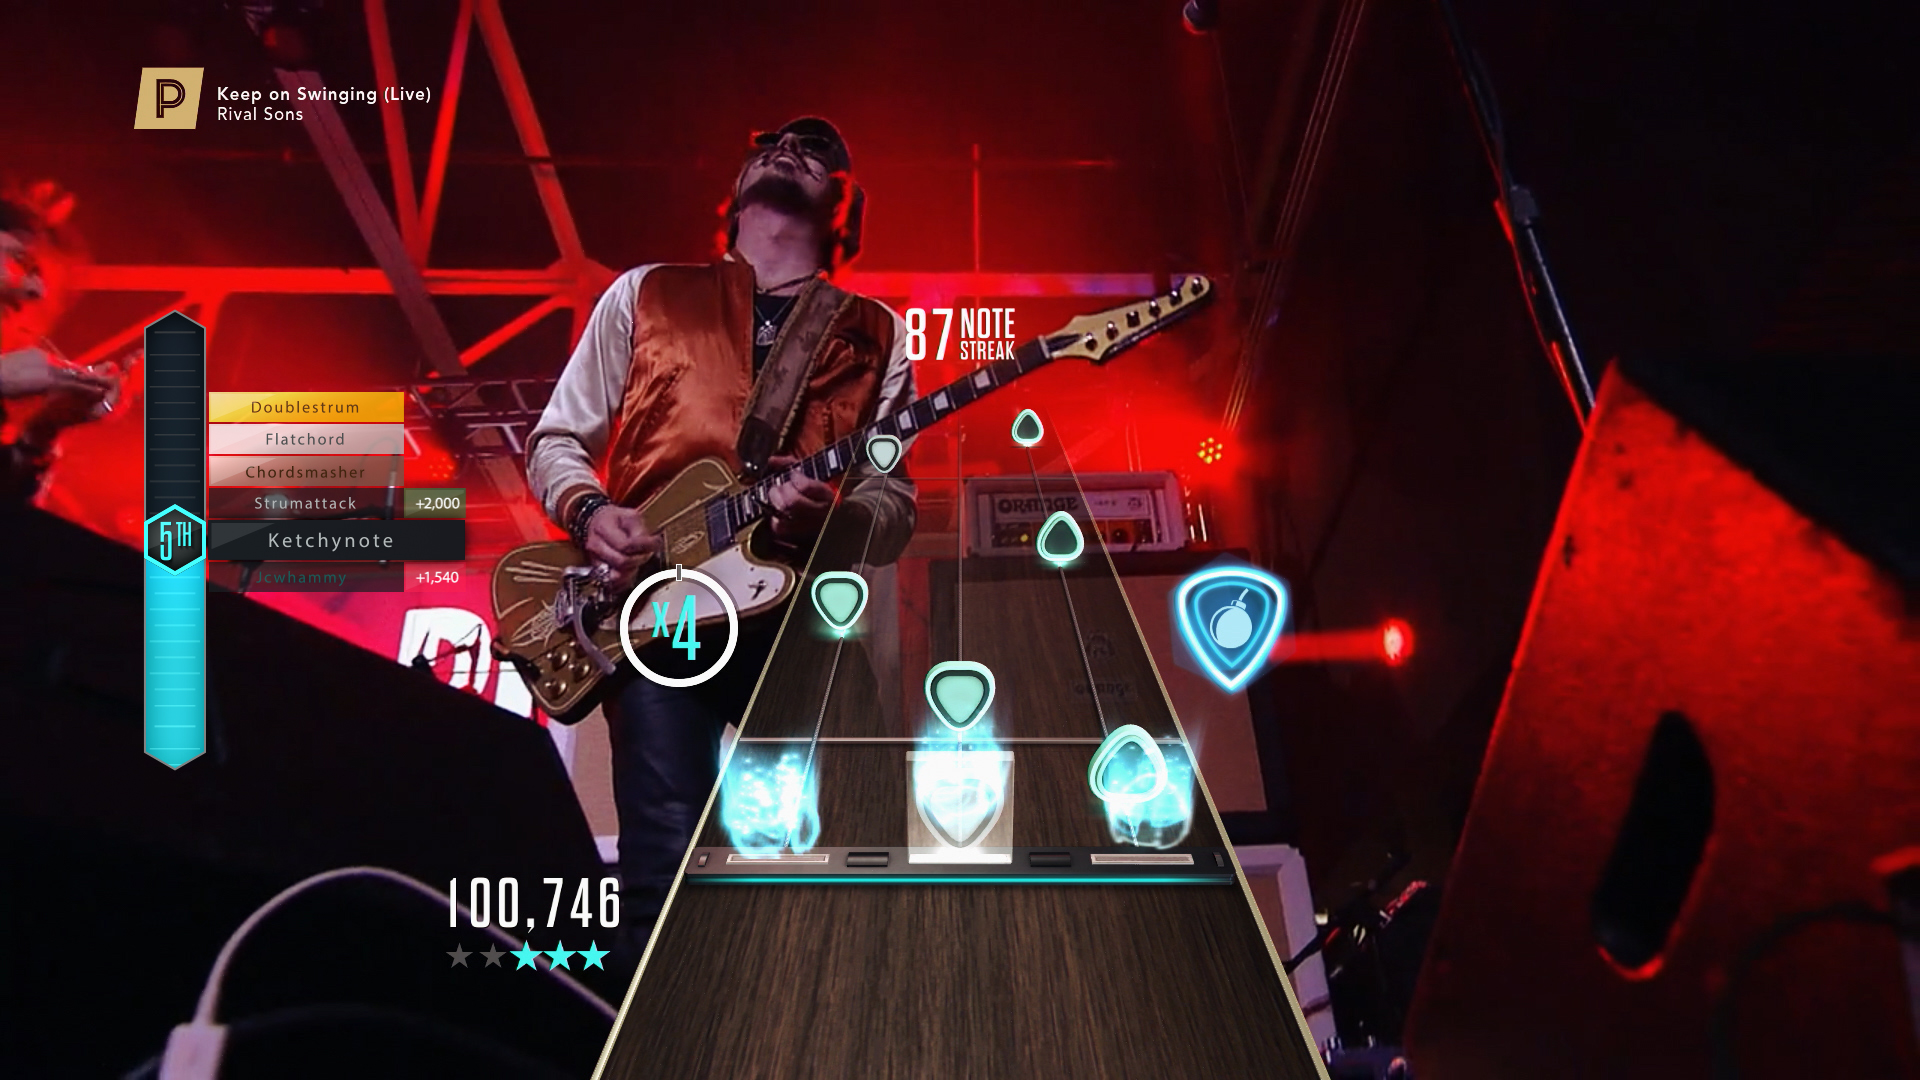 Avenged Sevenfold is hosting a show on Guitar Hero Live this week screenshot